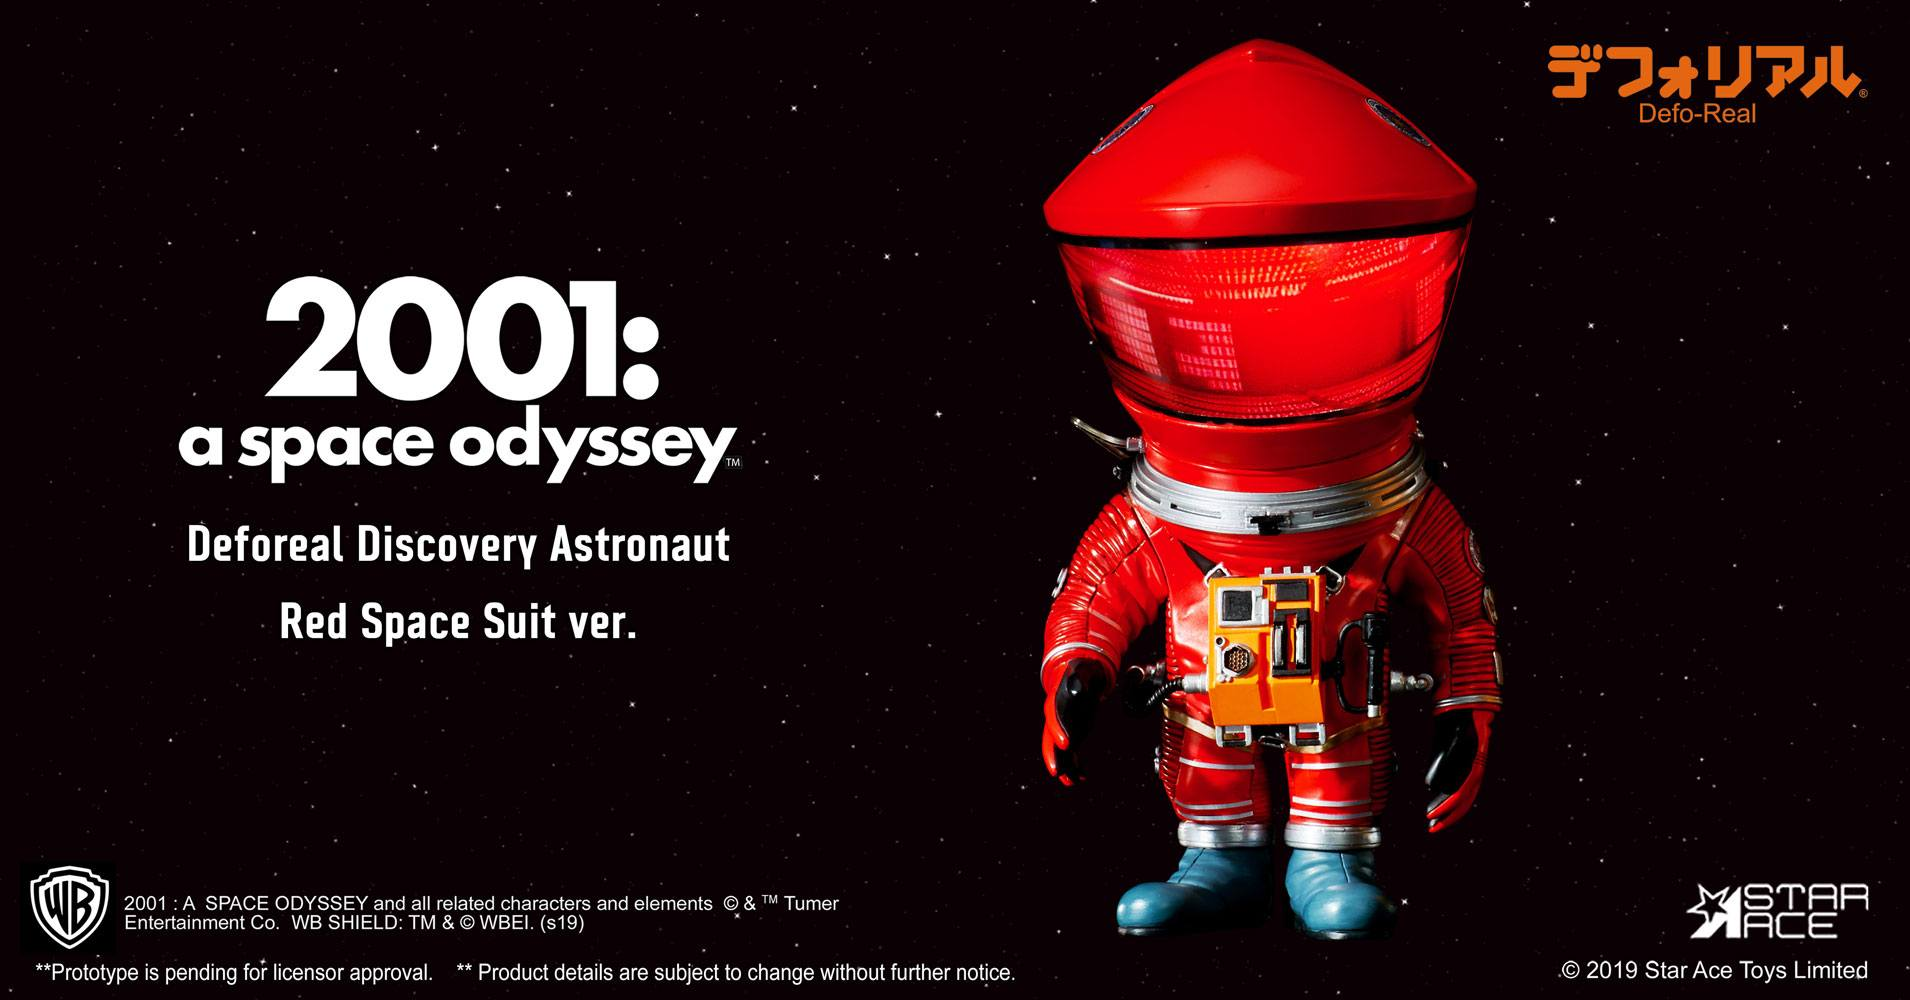 2001: A Space Odyssey Artist Defo-Real Series Soft Vinyl Figure DF Astronaut Red Ver. 15 cm